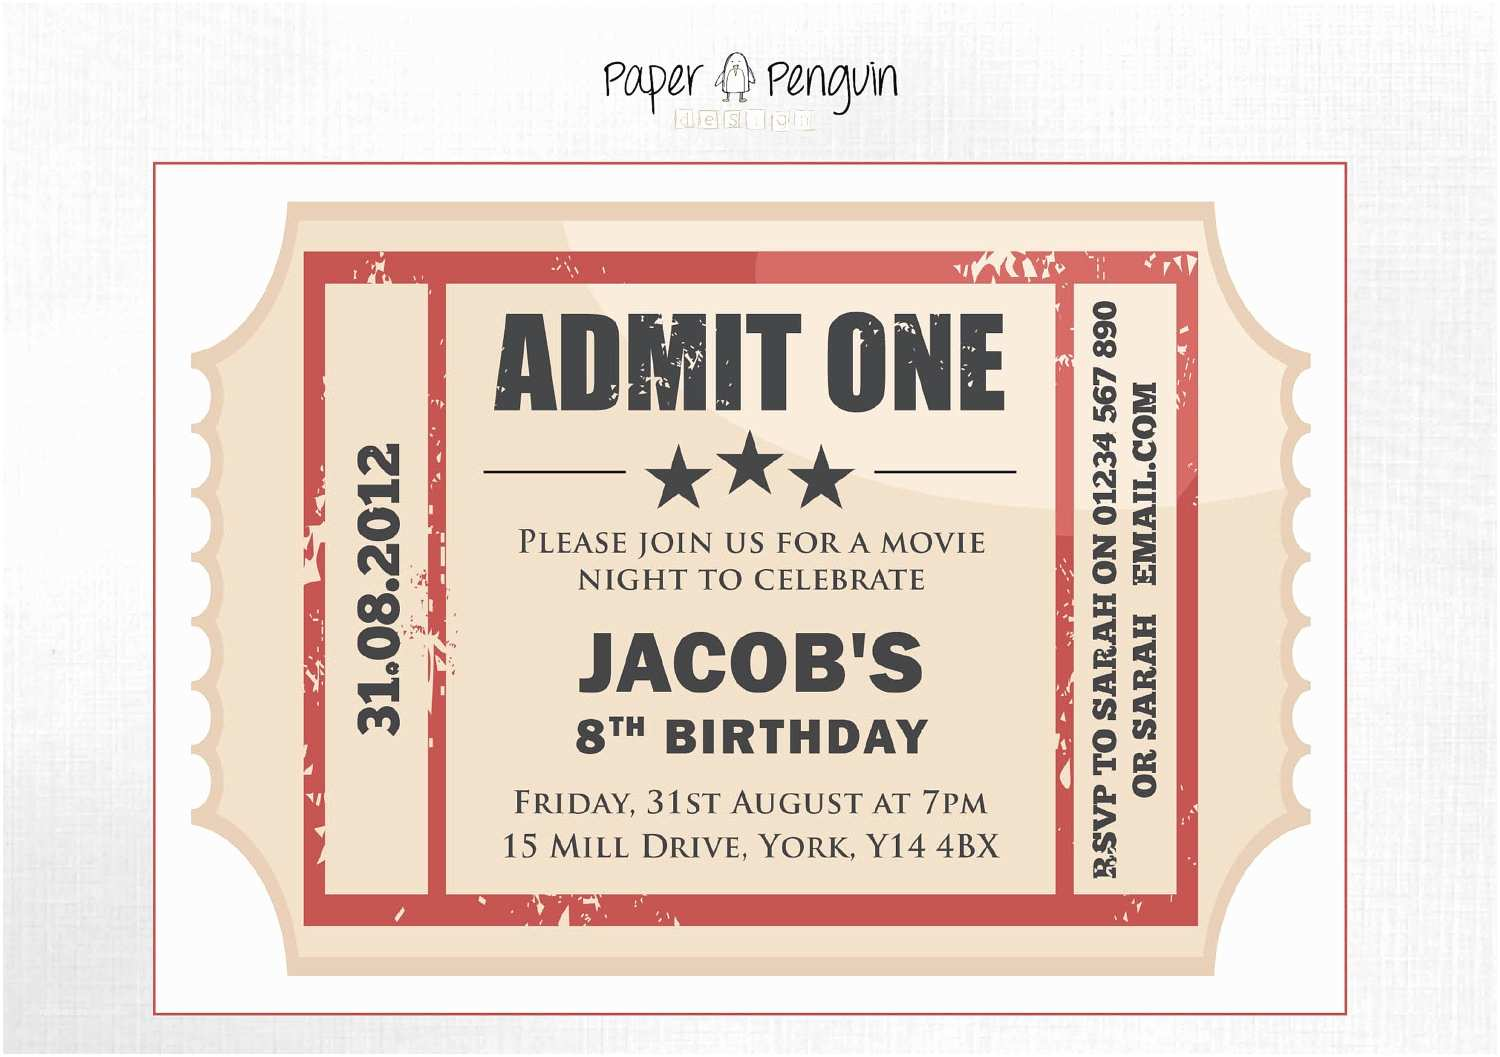 Customized Party Invitations Personalized Kid S Movie Ticket Party by Paperpenguindesign